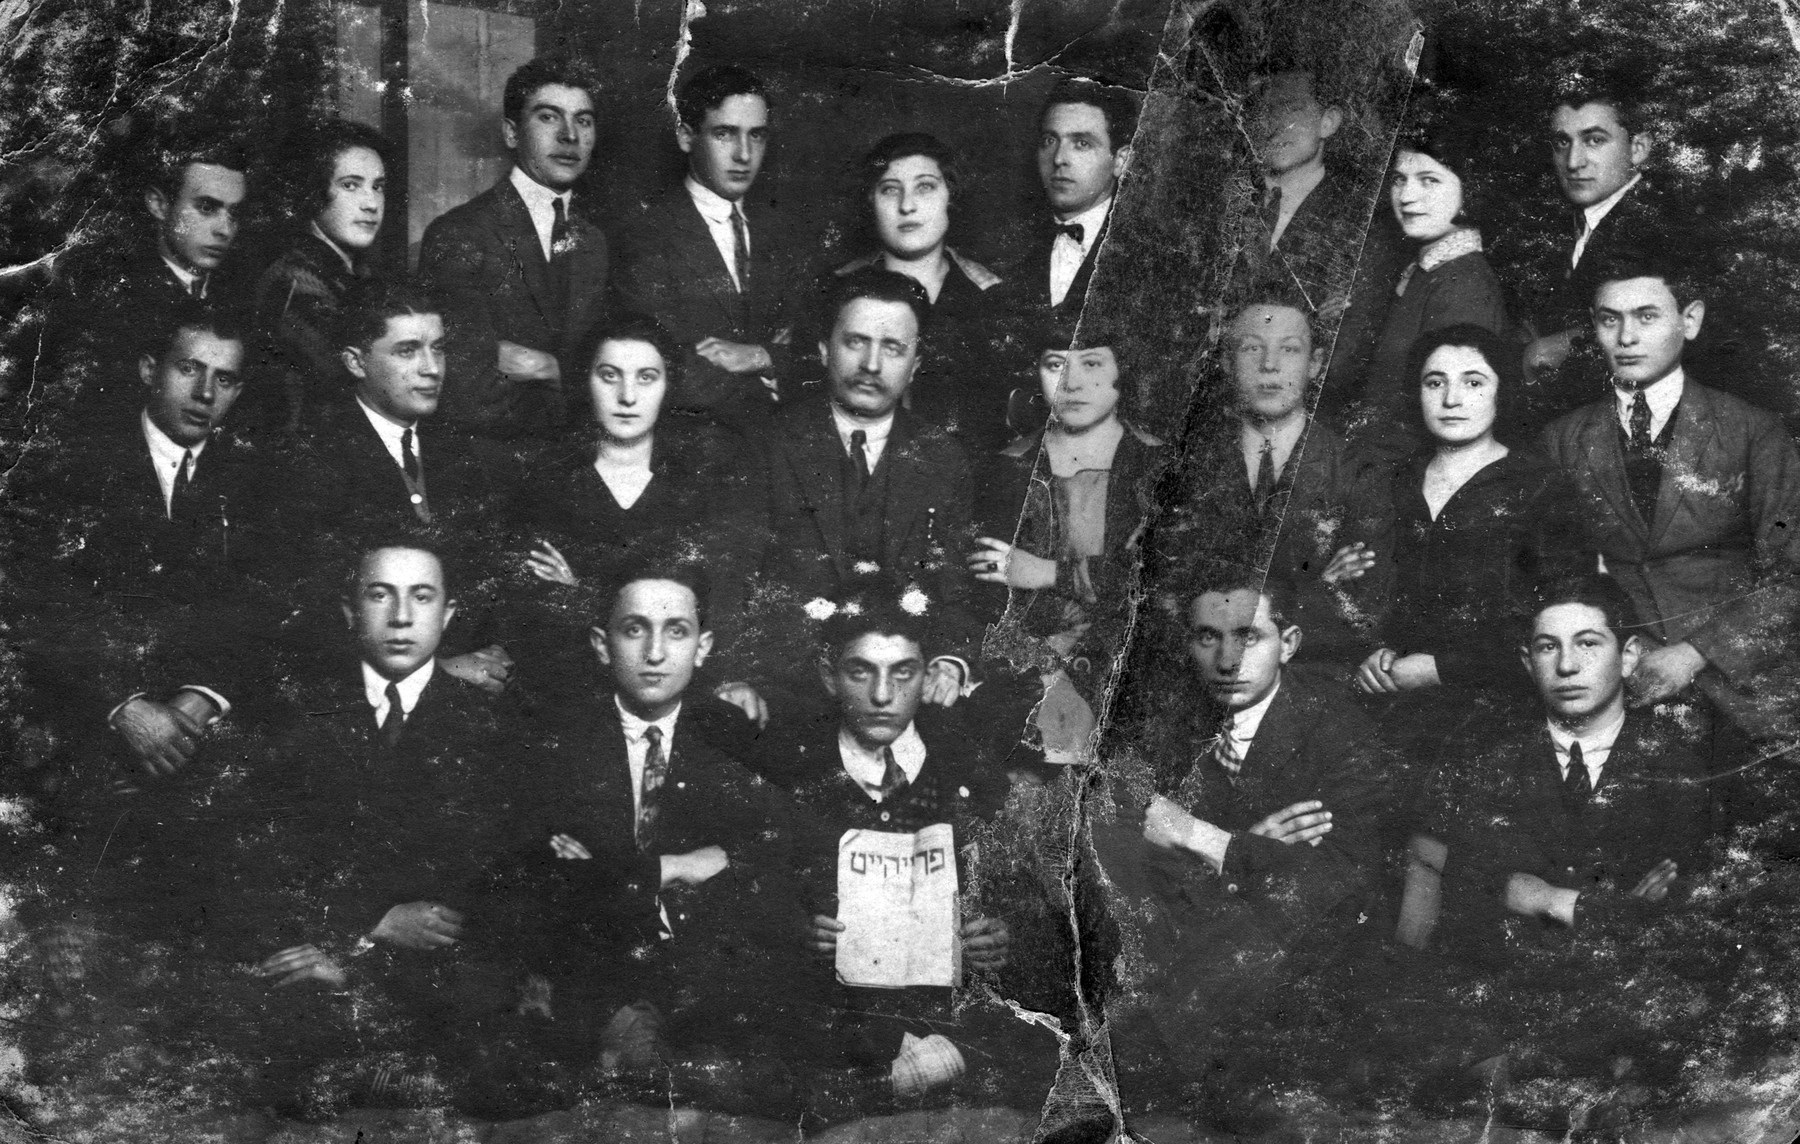 Group portrait of members of Poalei Zion Zionist youth organization in Bedzin.  The young man in the front row holds an issue of a Zionist newspaper 'Freiheit' [Freedom].  Among those pictured is Berl Loker, the leader of the group (second row, center) and Anszel Borzykowski (second row, third from the right).